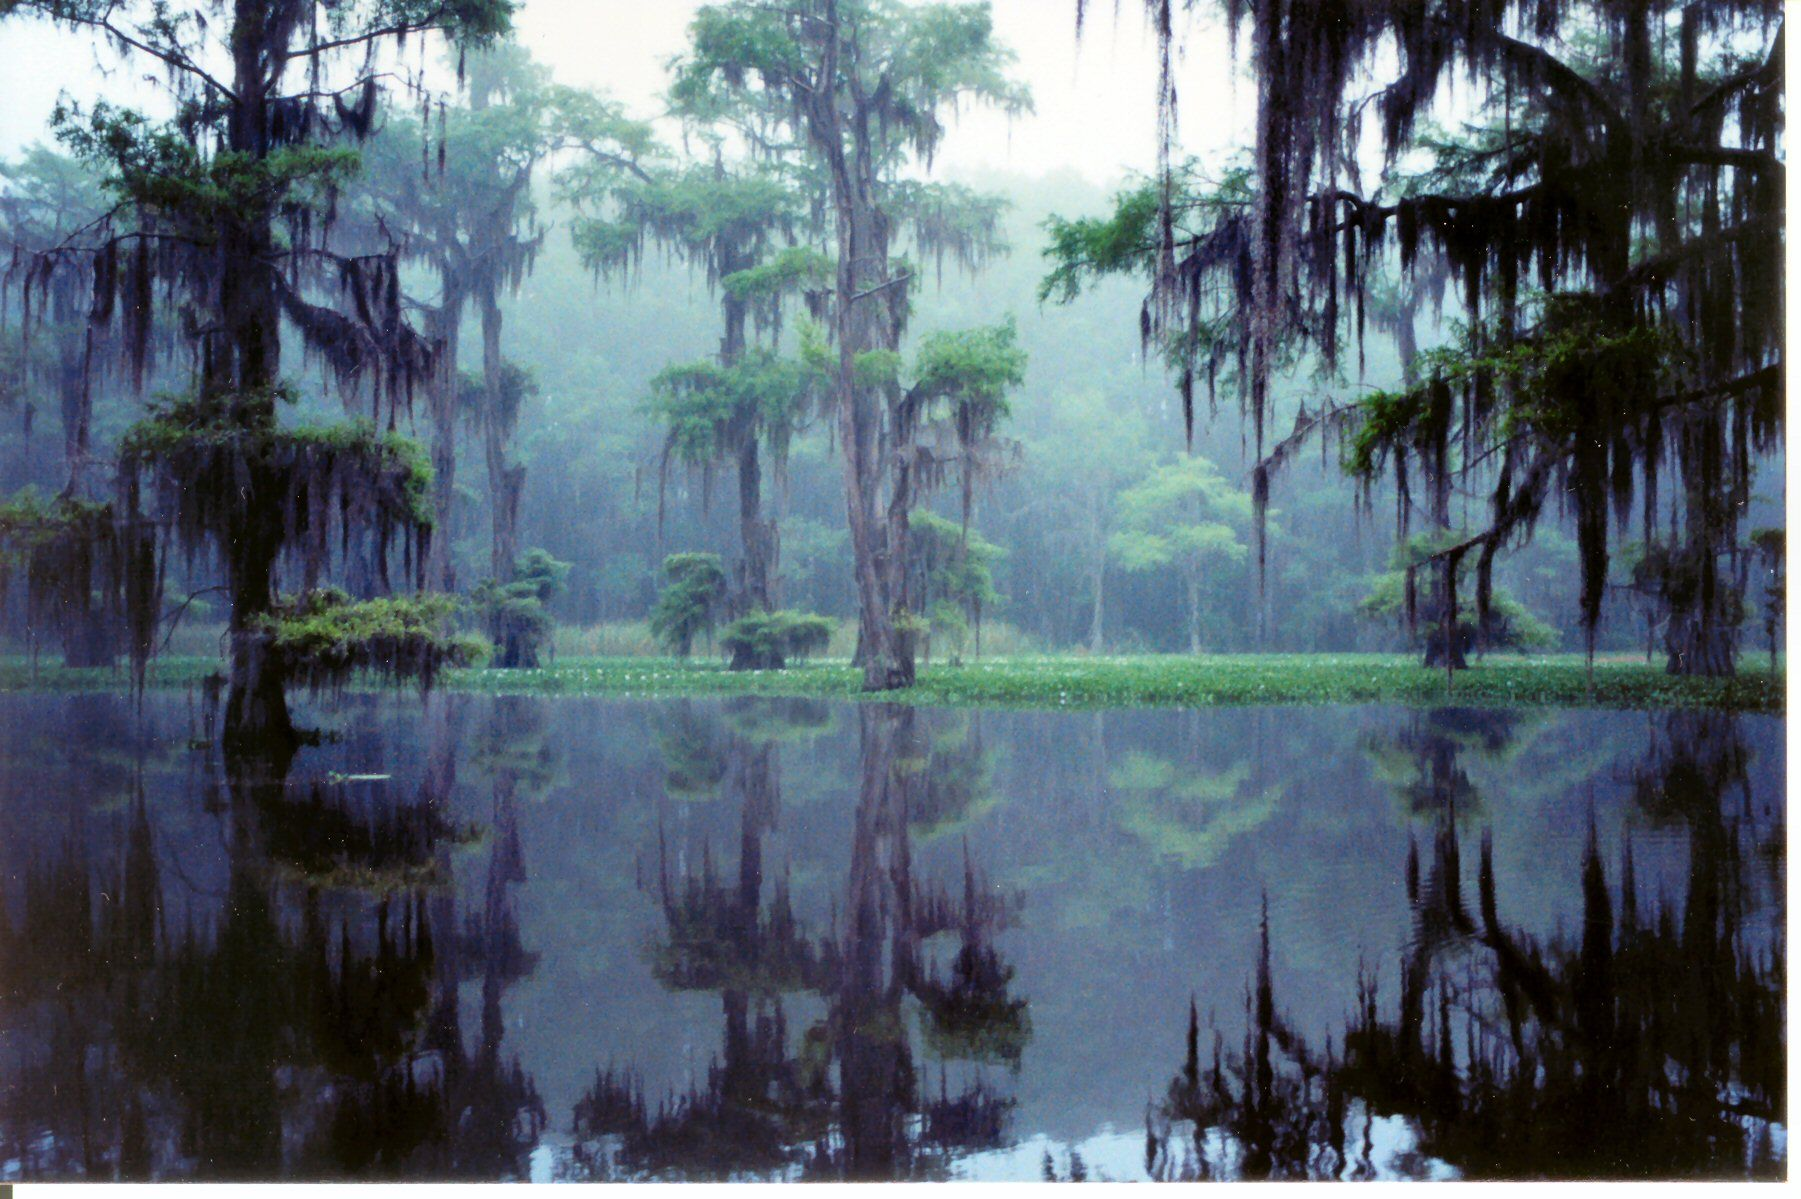 Caddo lake texas the only natural lake in texas for Caddo lake fishing